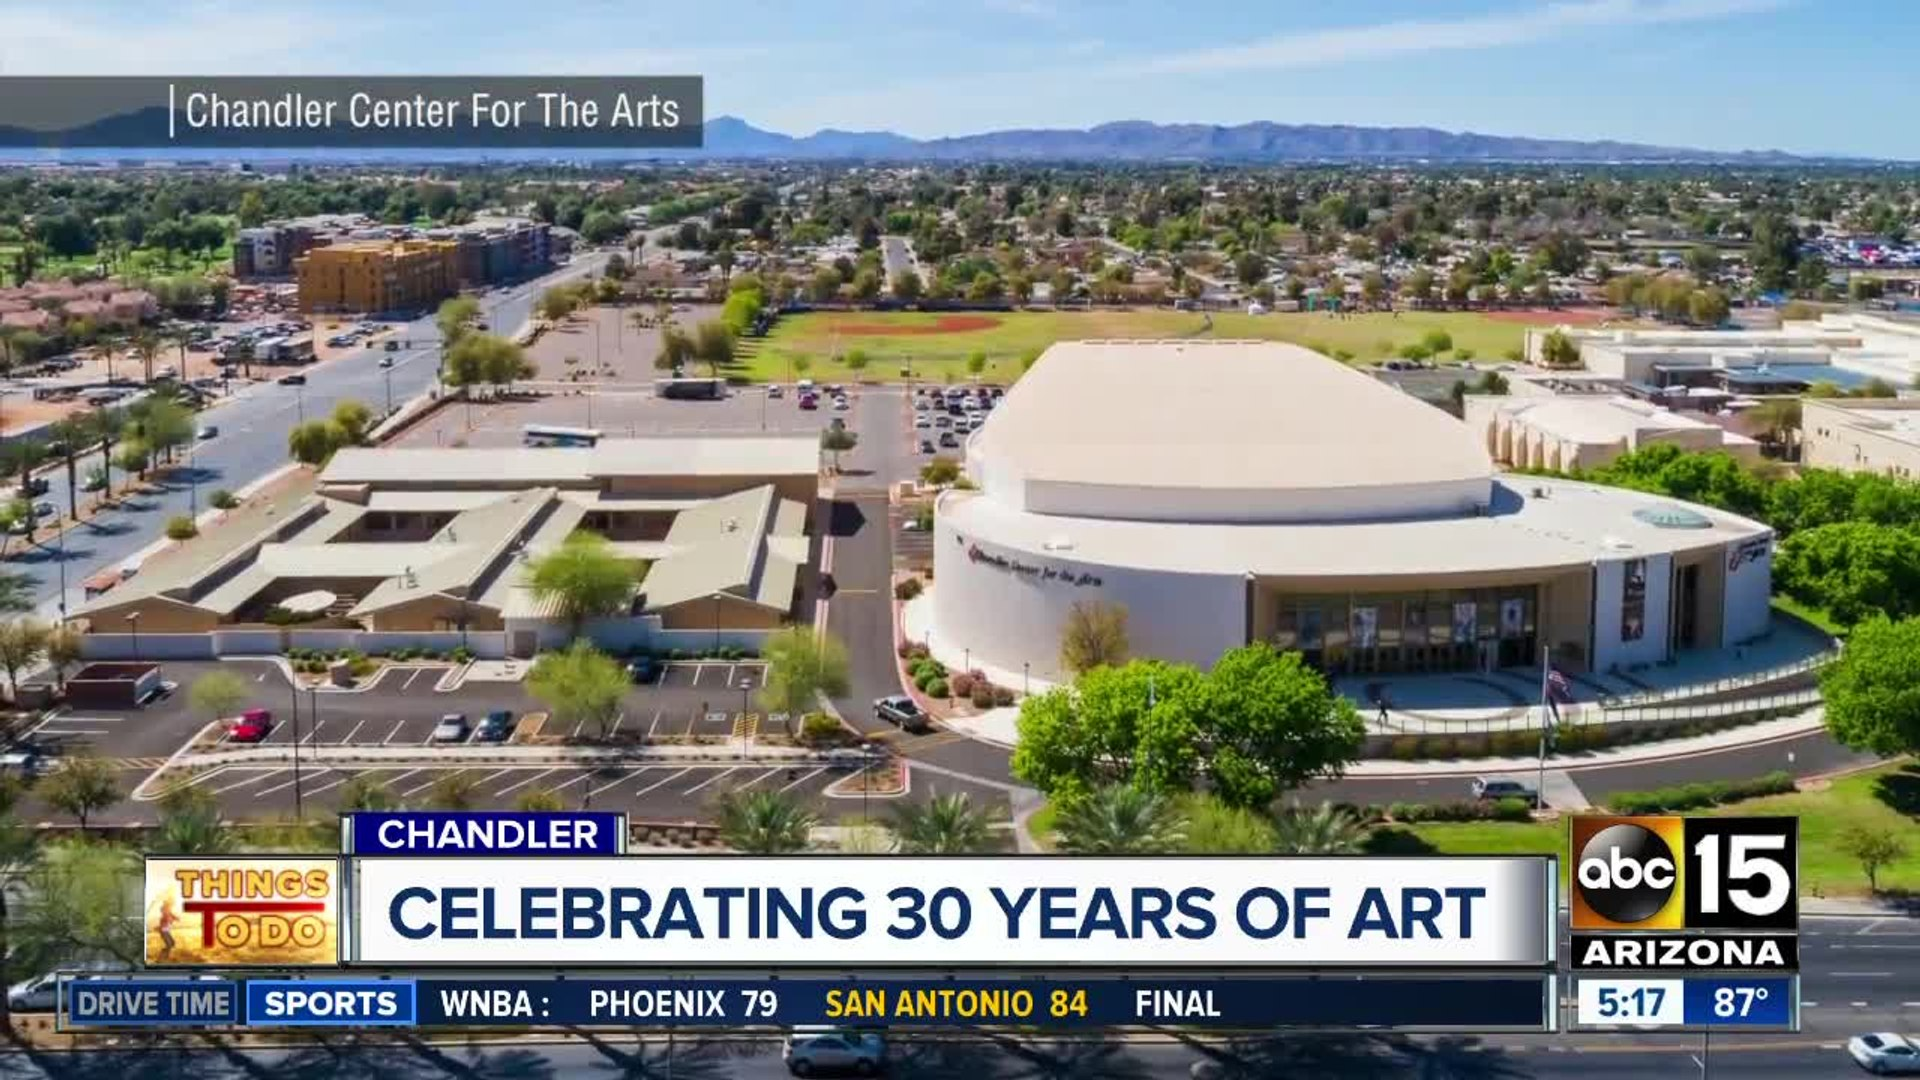 Chandler Center for the Arts is celebrating its 30th anniversary this weekend